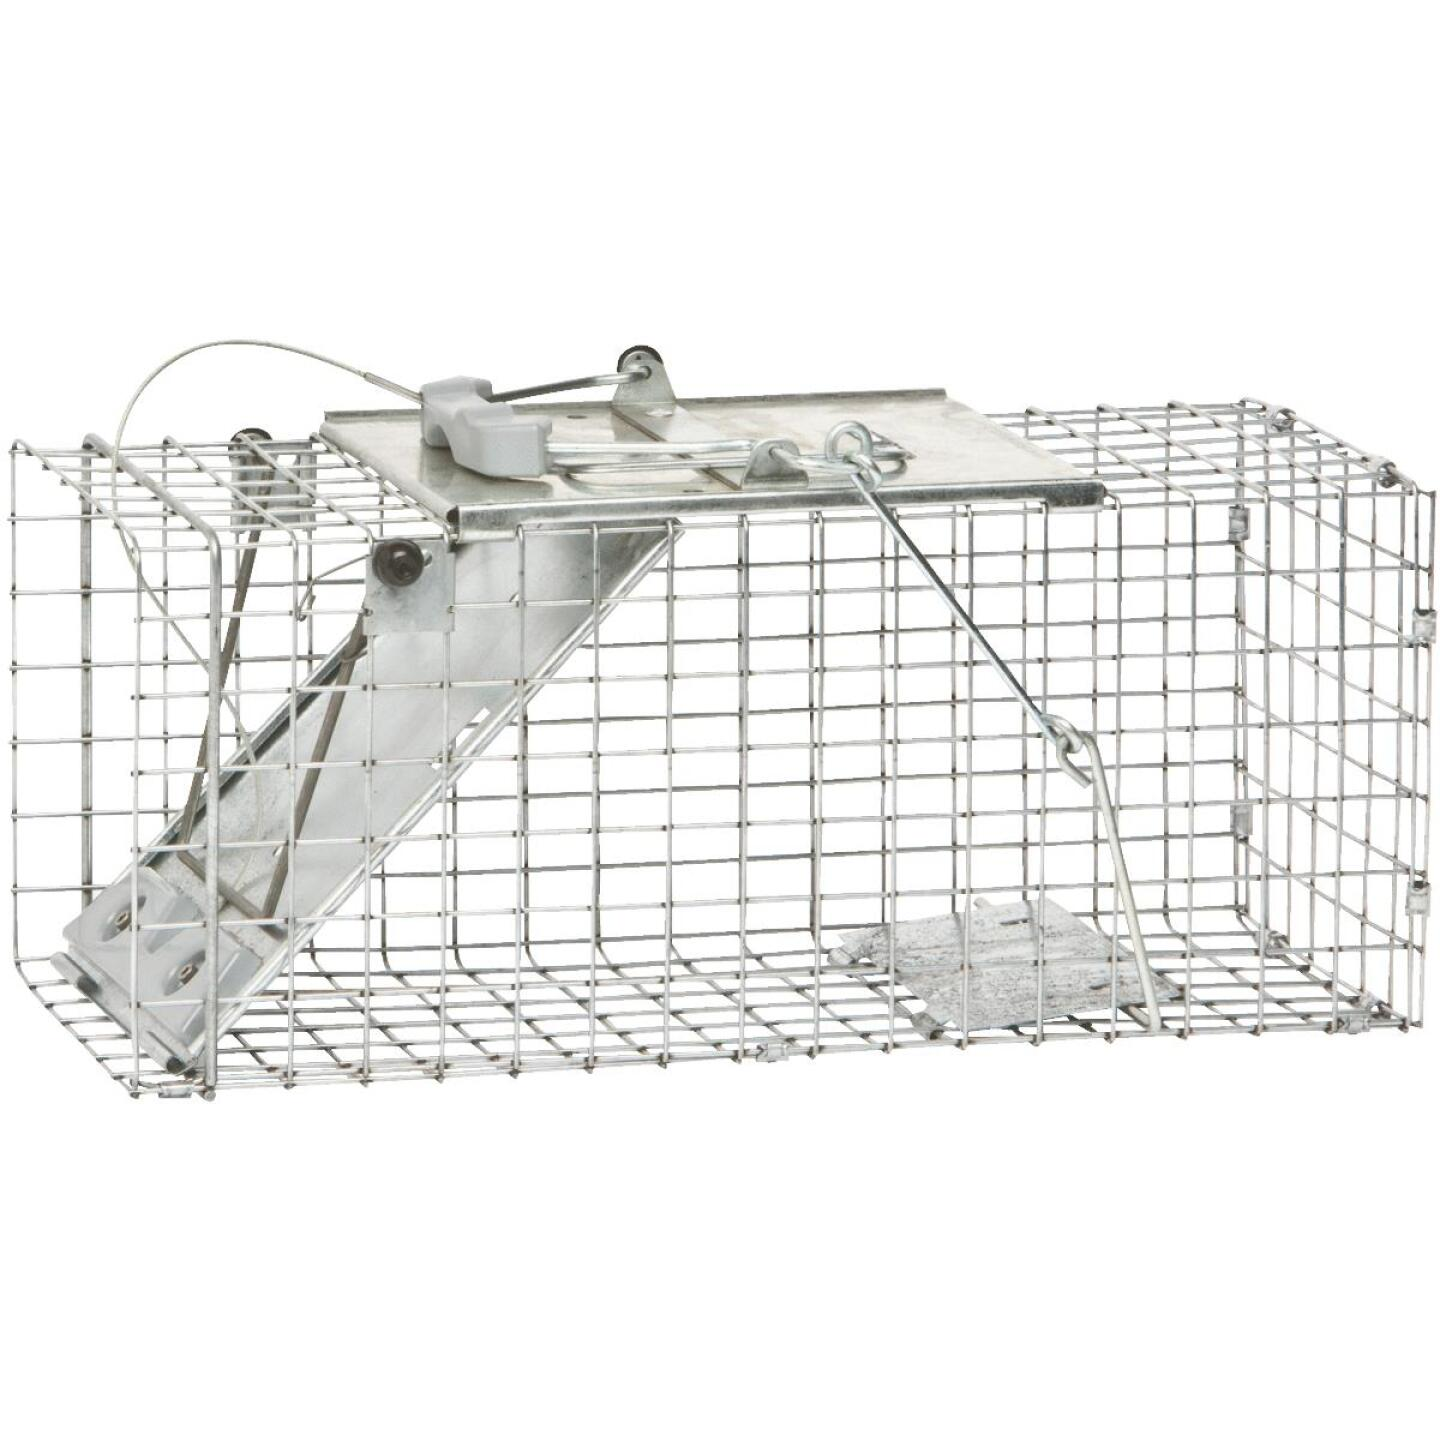 Havahart Easy Set Galvanized Steel 17 In. Live Squirrel Trap Image 2